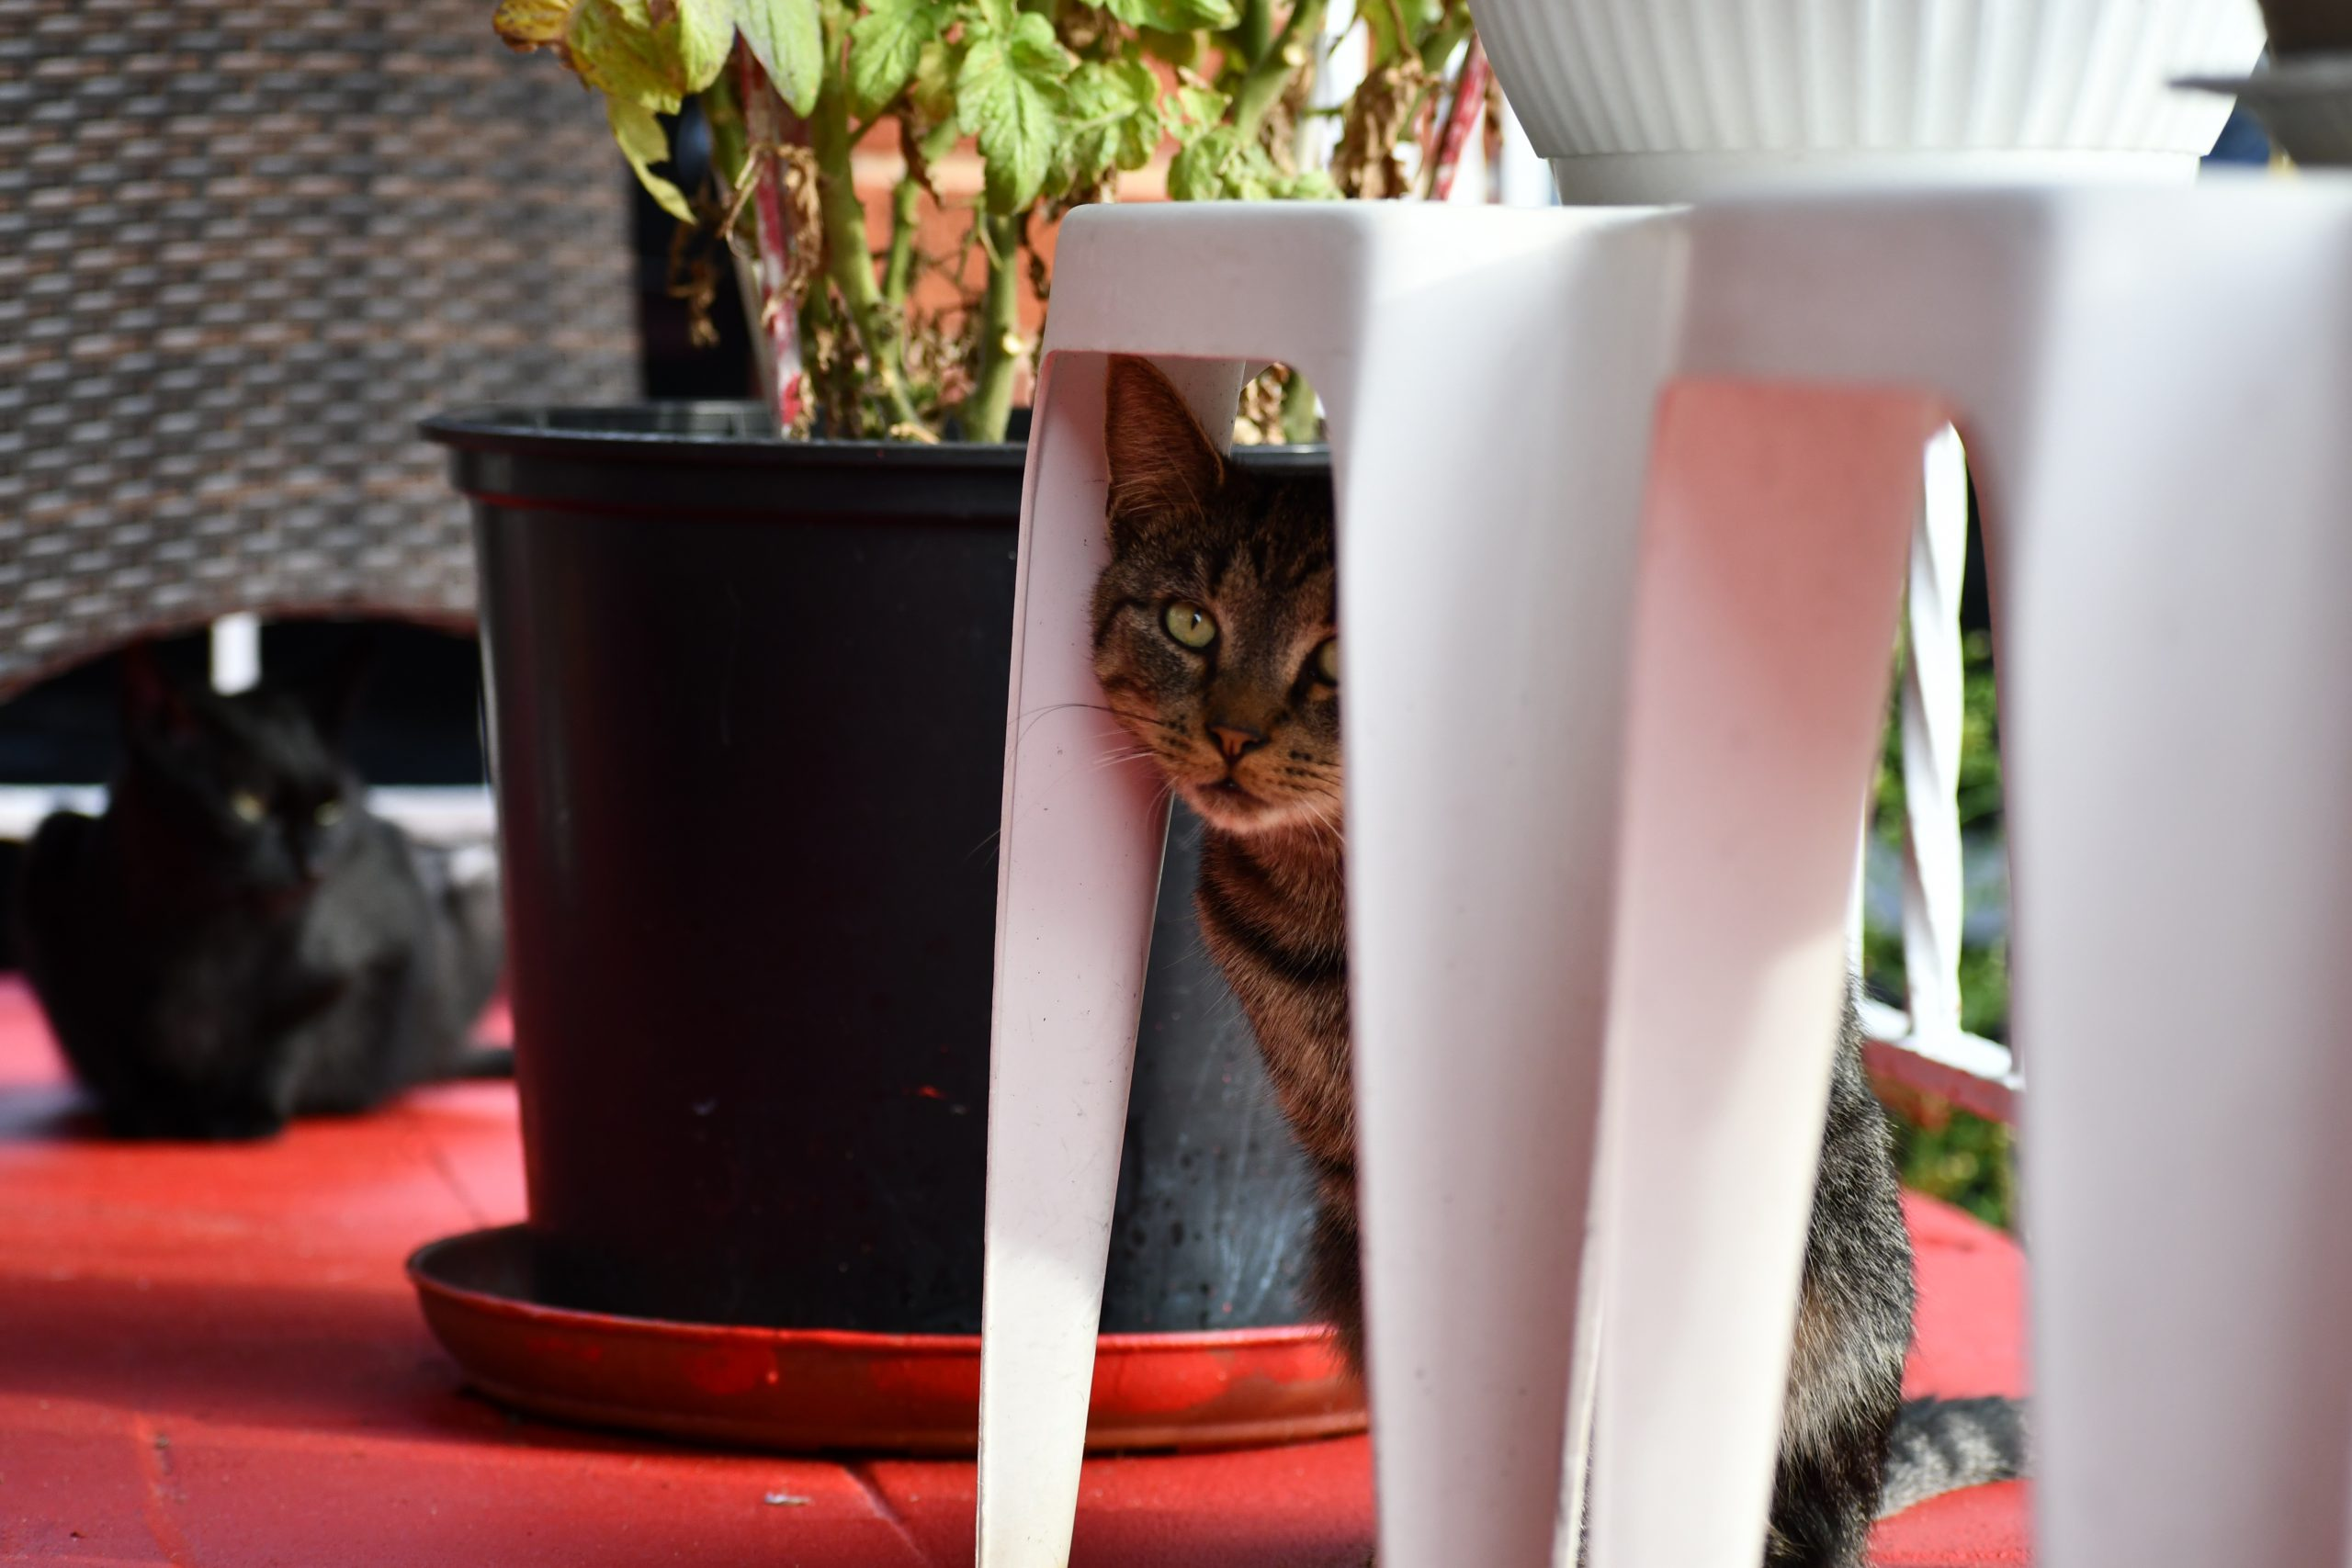 Black and gray striped tabby George peers out from behind a white plastic stool. Black cat Inky lies in the background.